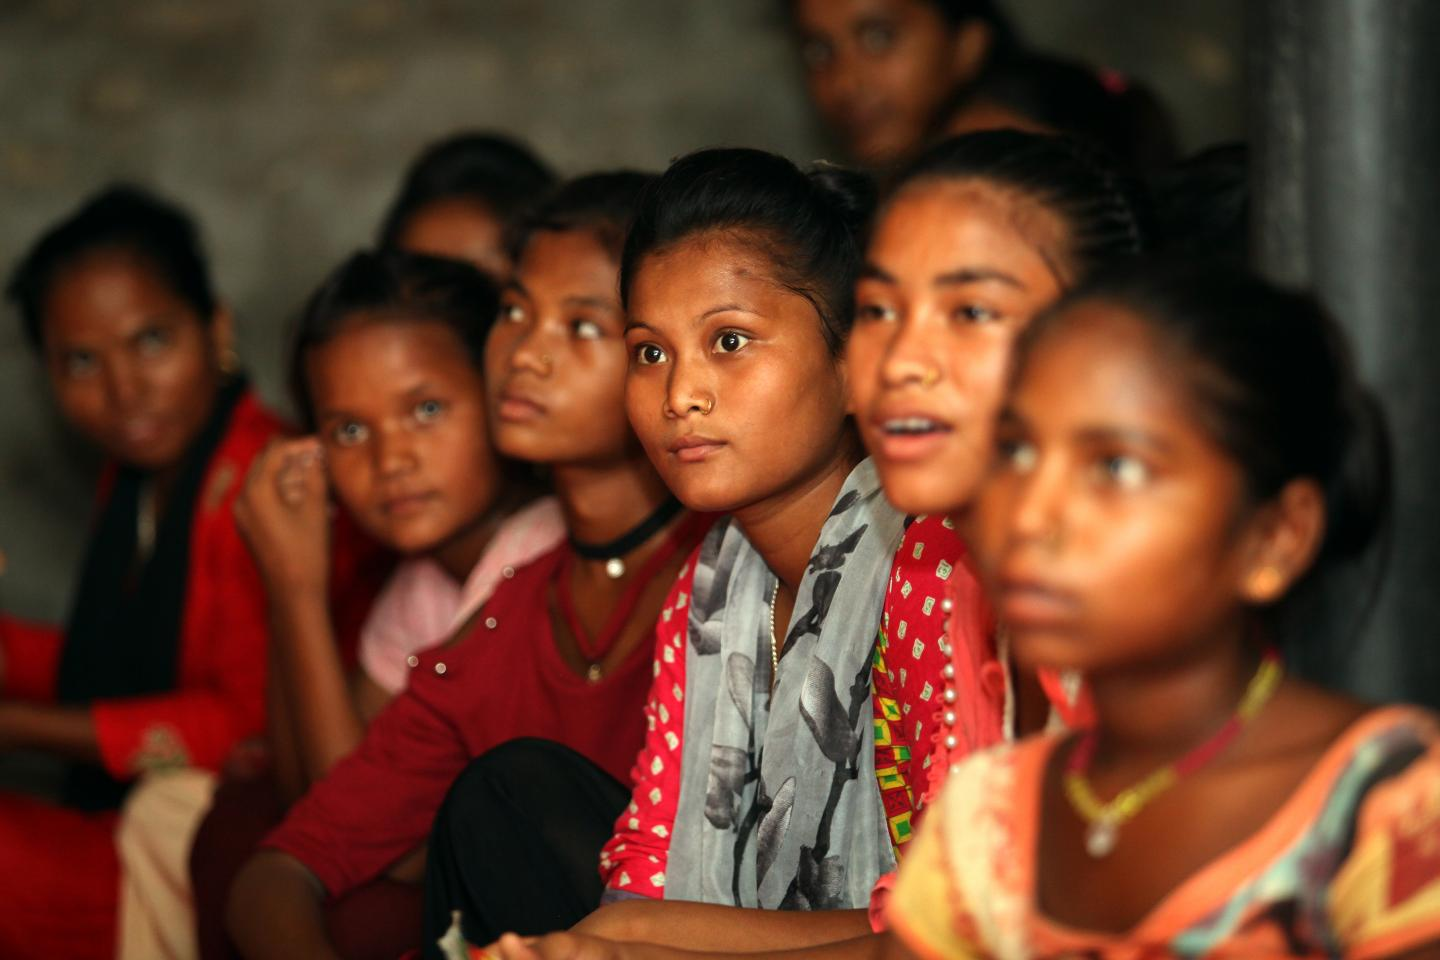 In Nepal, 40 per cent of girls are married before they turn 18. The Global Programme helps girls at risk of dropping out of school to continue their education and provides training to out-of-school girls to ease their reintegration in the formal education system.